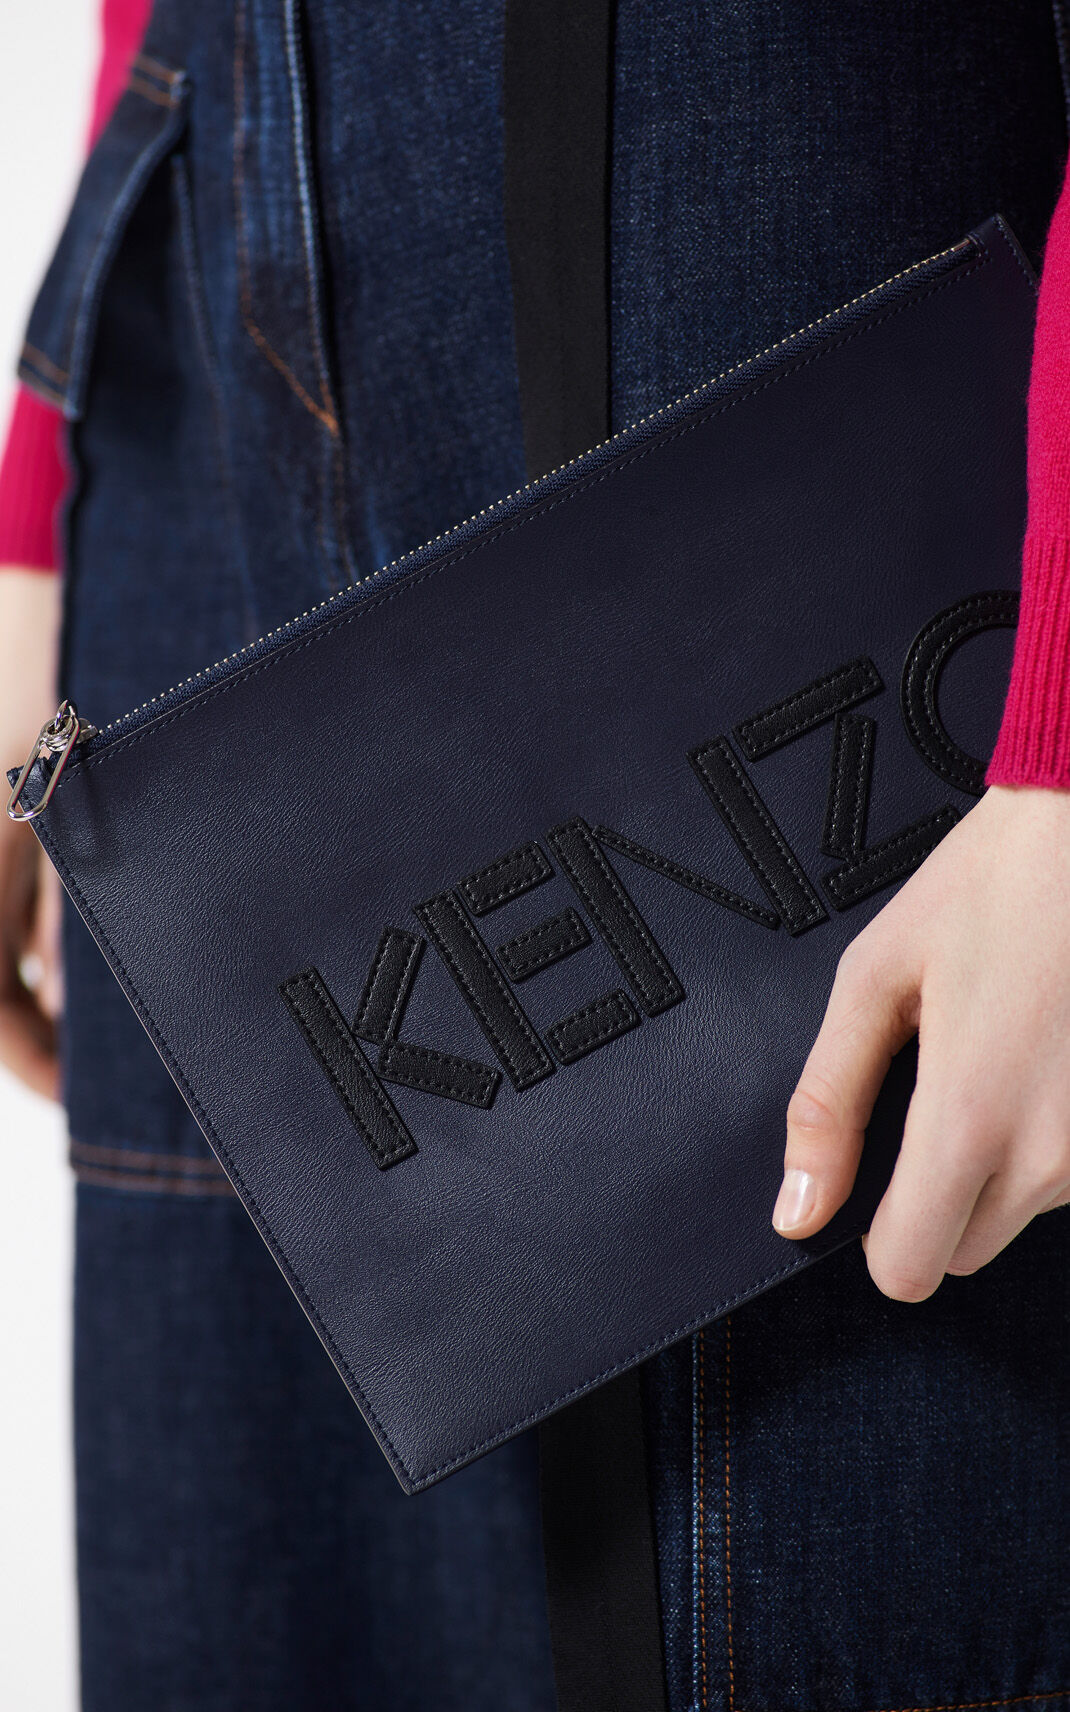 NAVY BLUE KENZO colorblock clutch for unisex